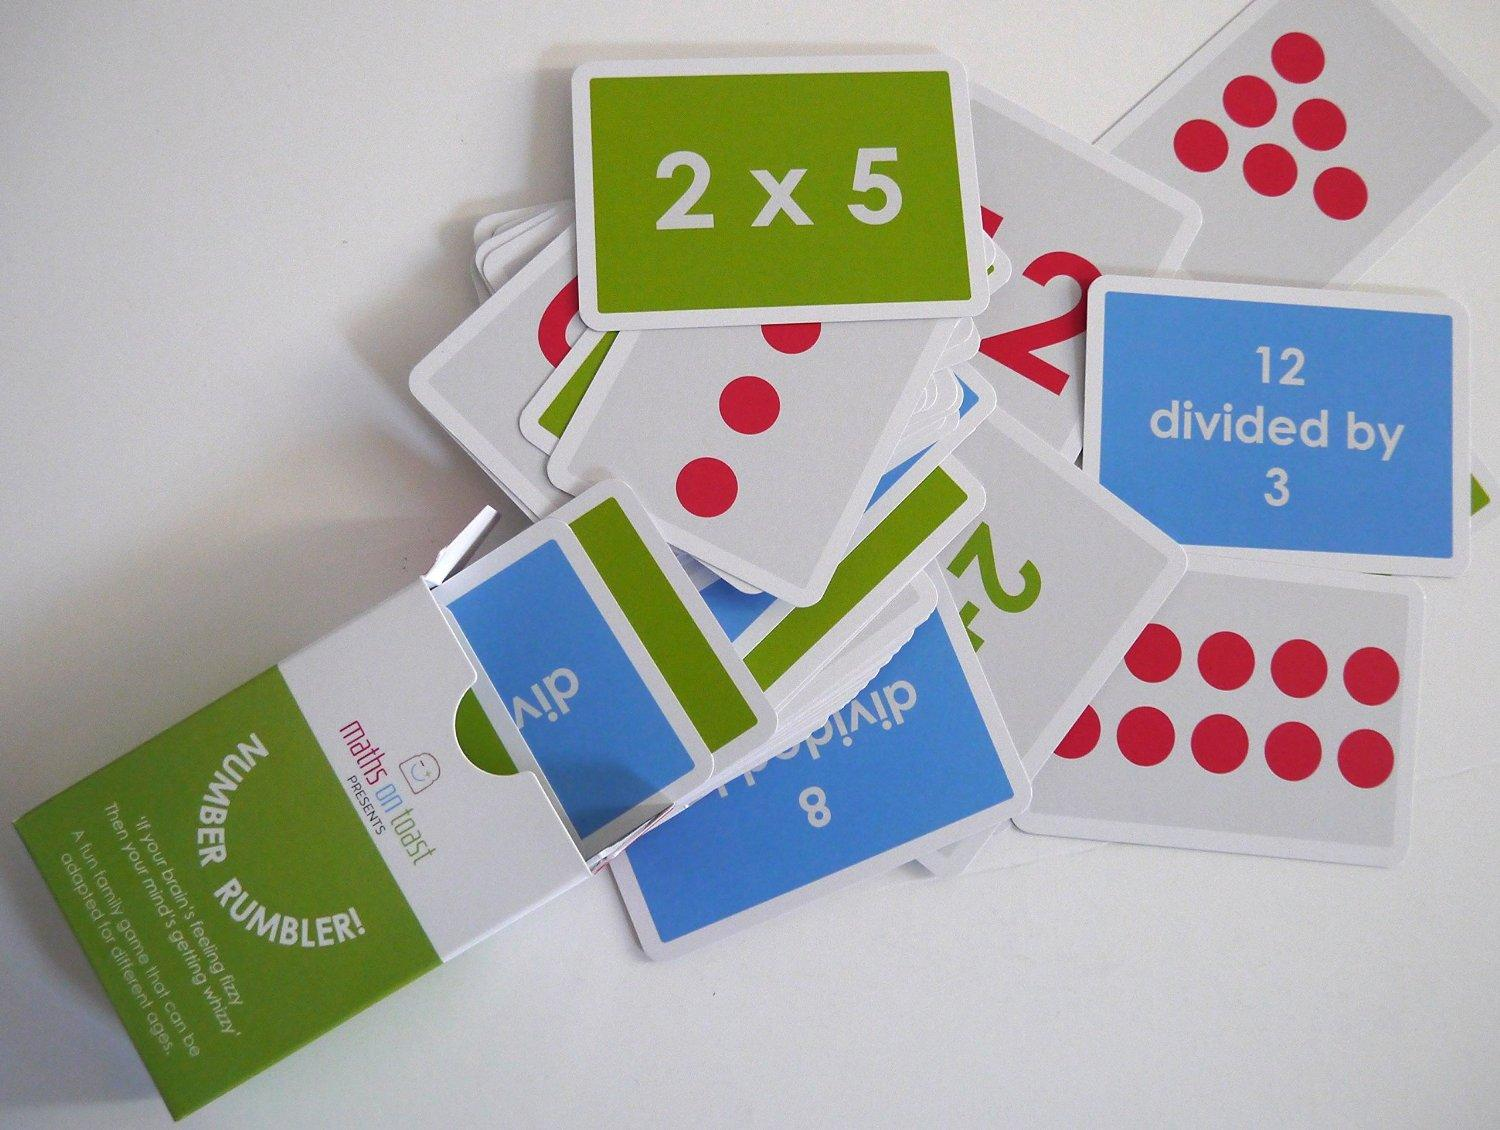 Number Rumbler card game